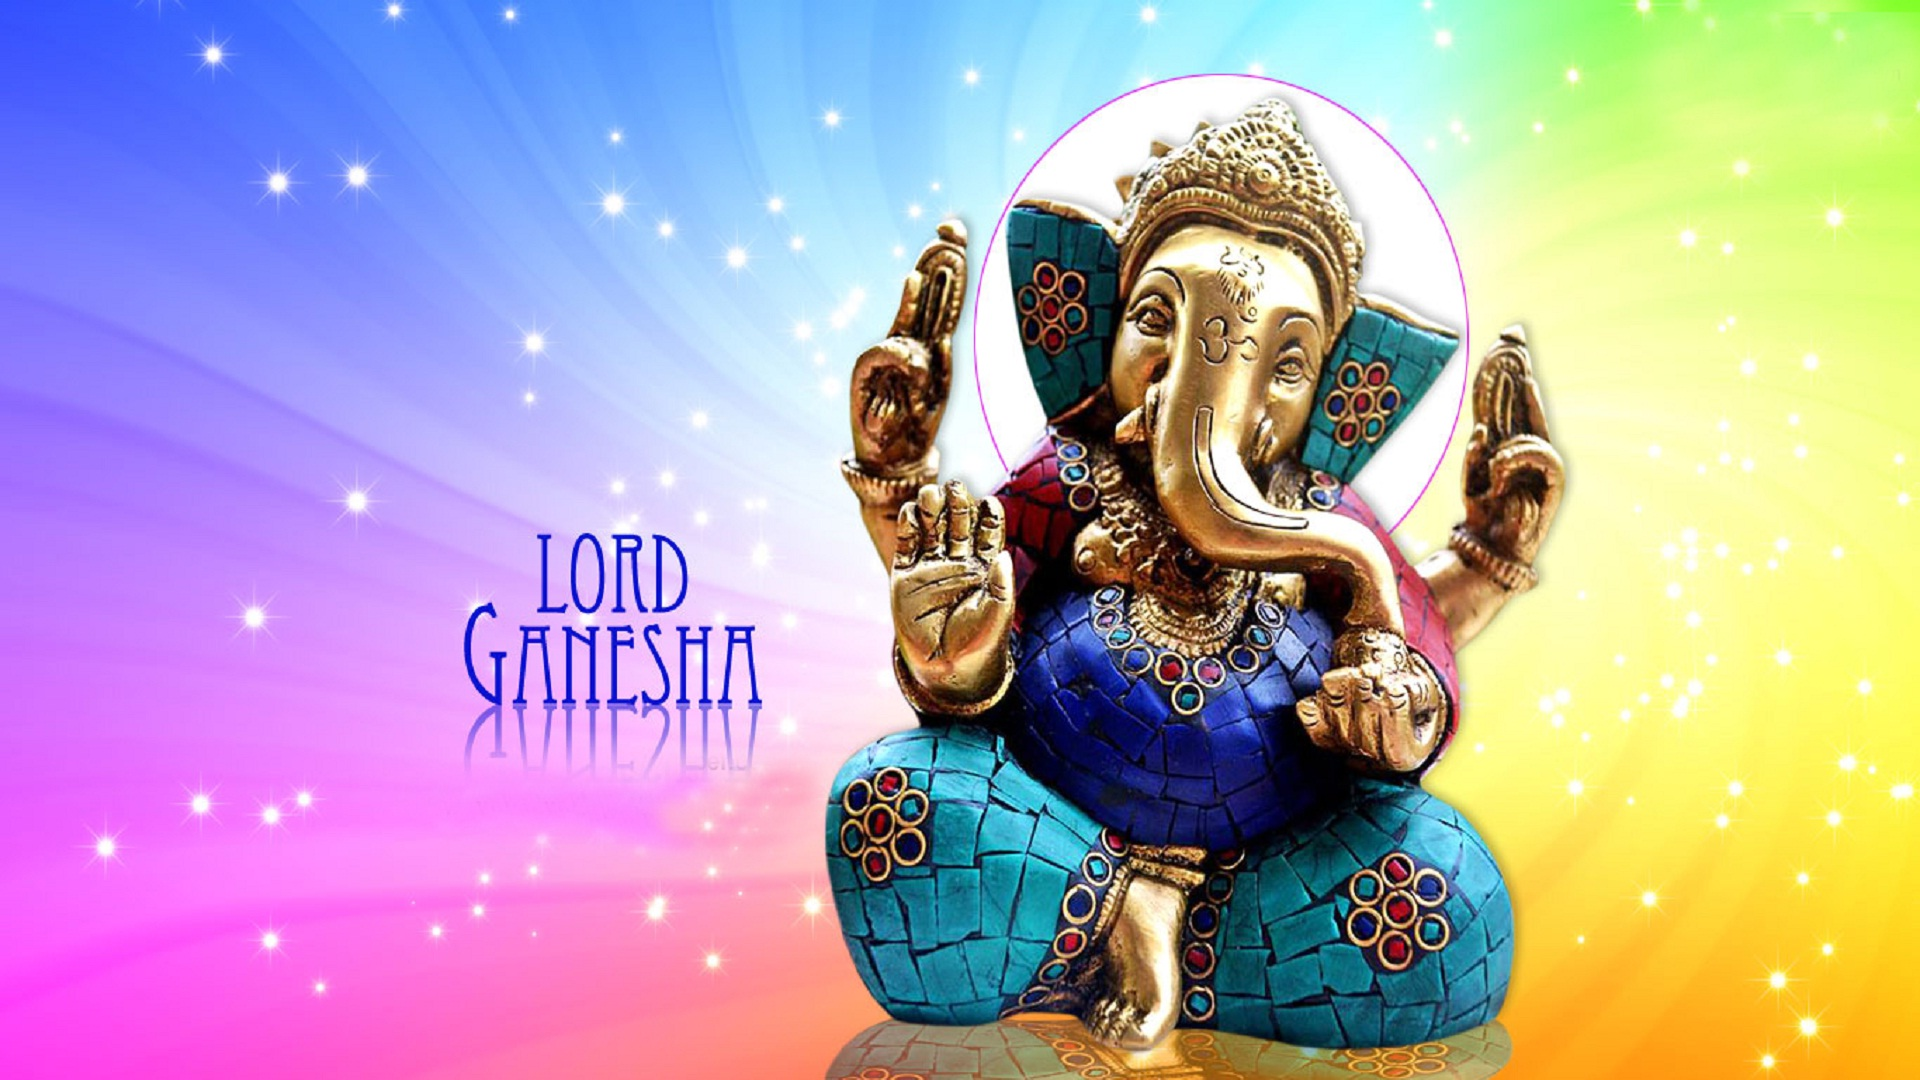 Well Hd Lord Ganesha Wallpapers For Desktop